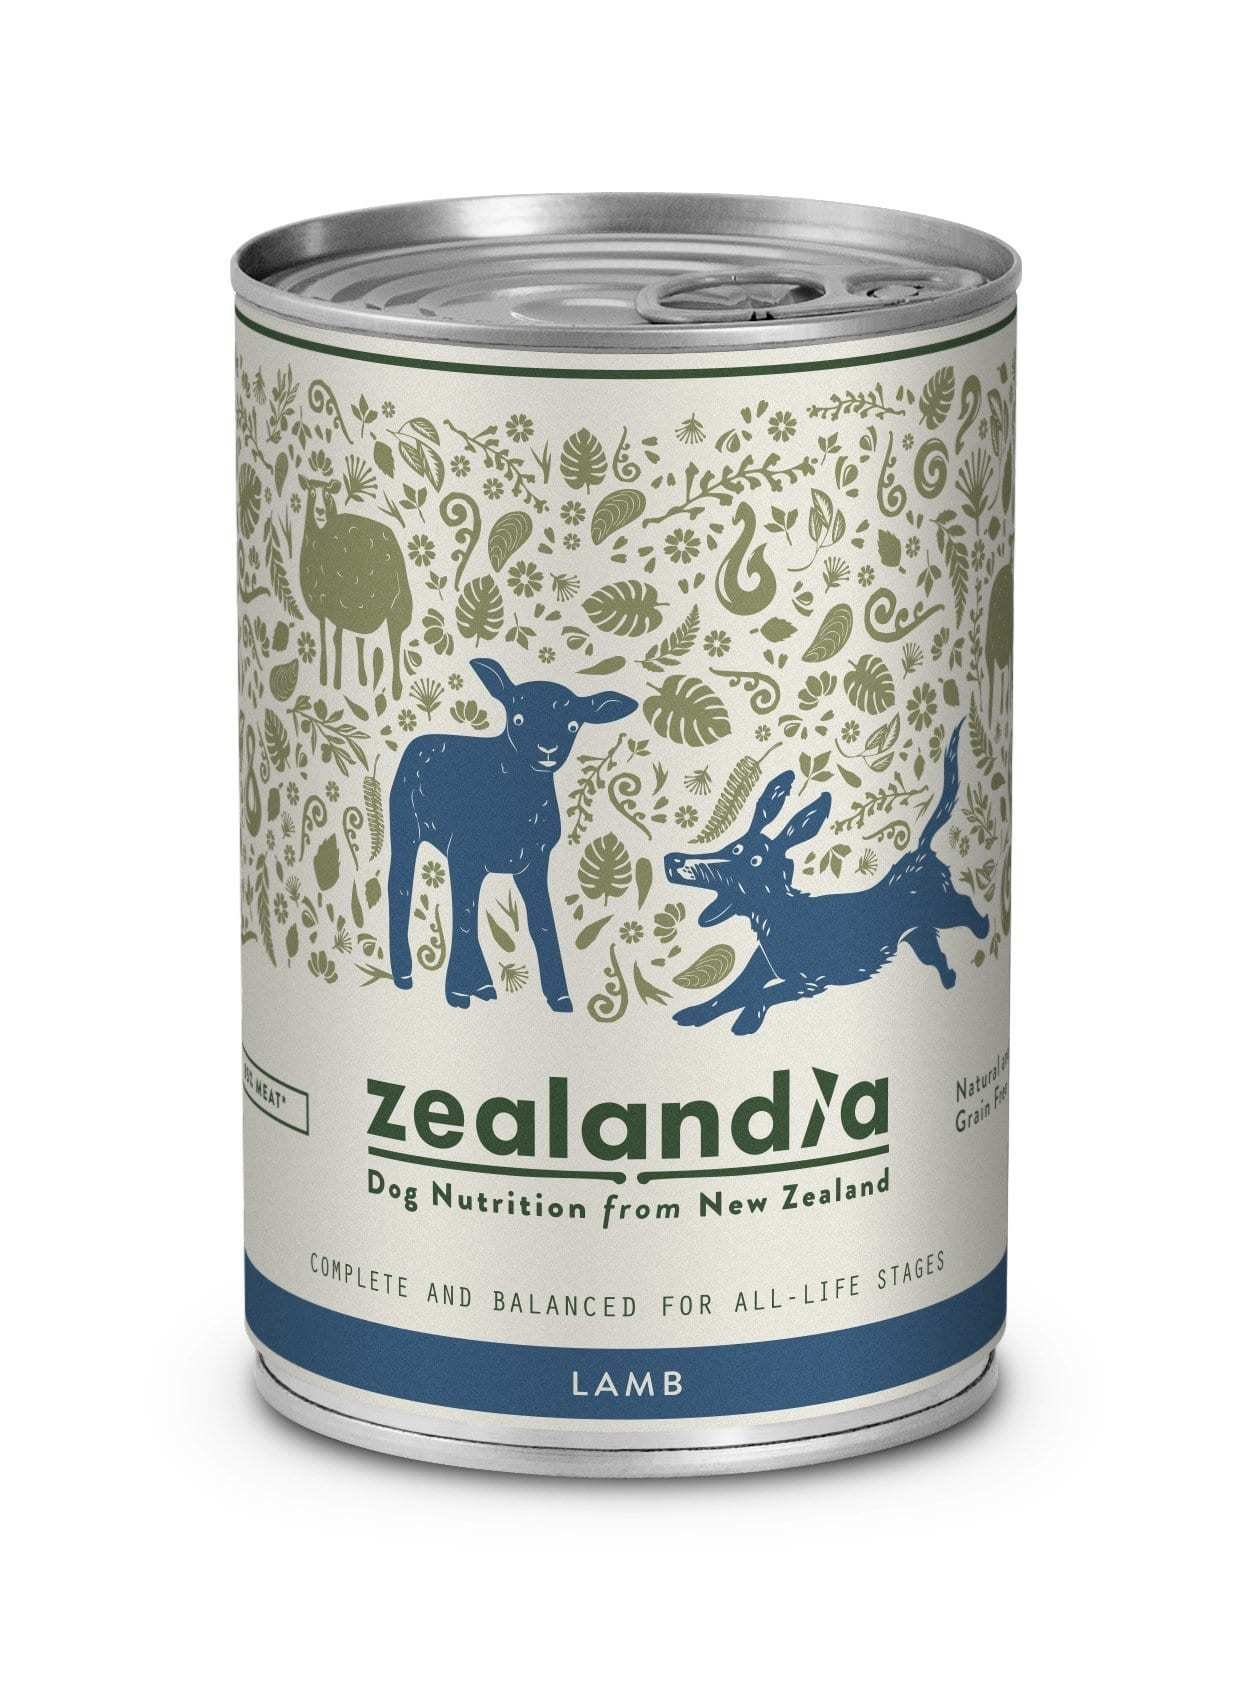 Free Range NZ Lamb 370g Tin Dog Singles or 12 Pkt are on SALE copy-of-zealandia-dog-free-range-nz-lamb-370g-tin